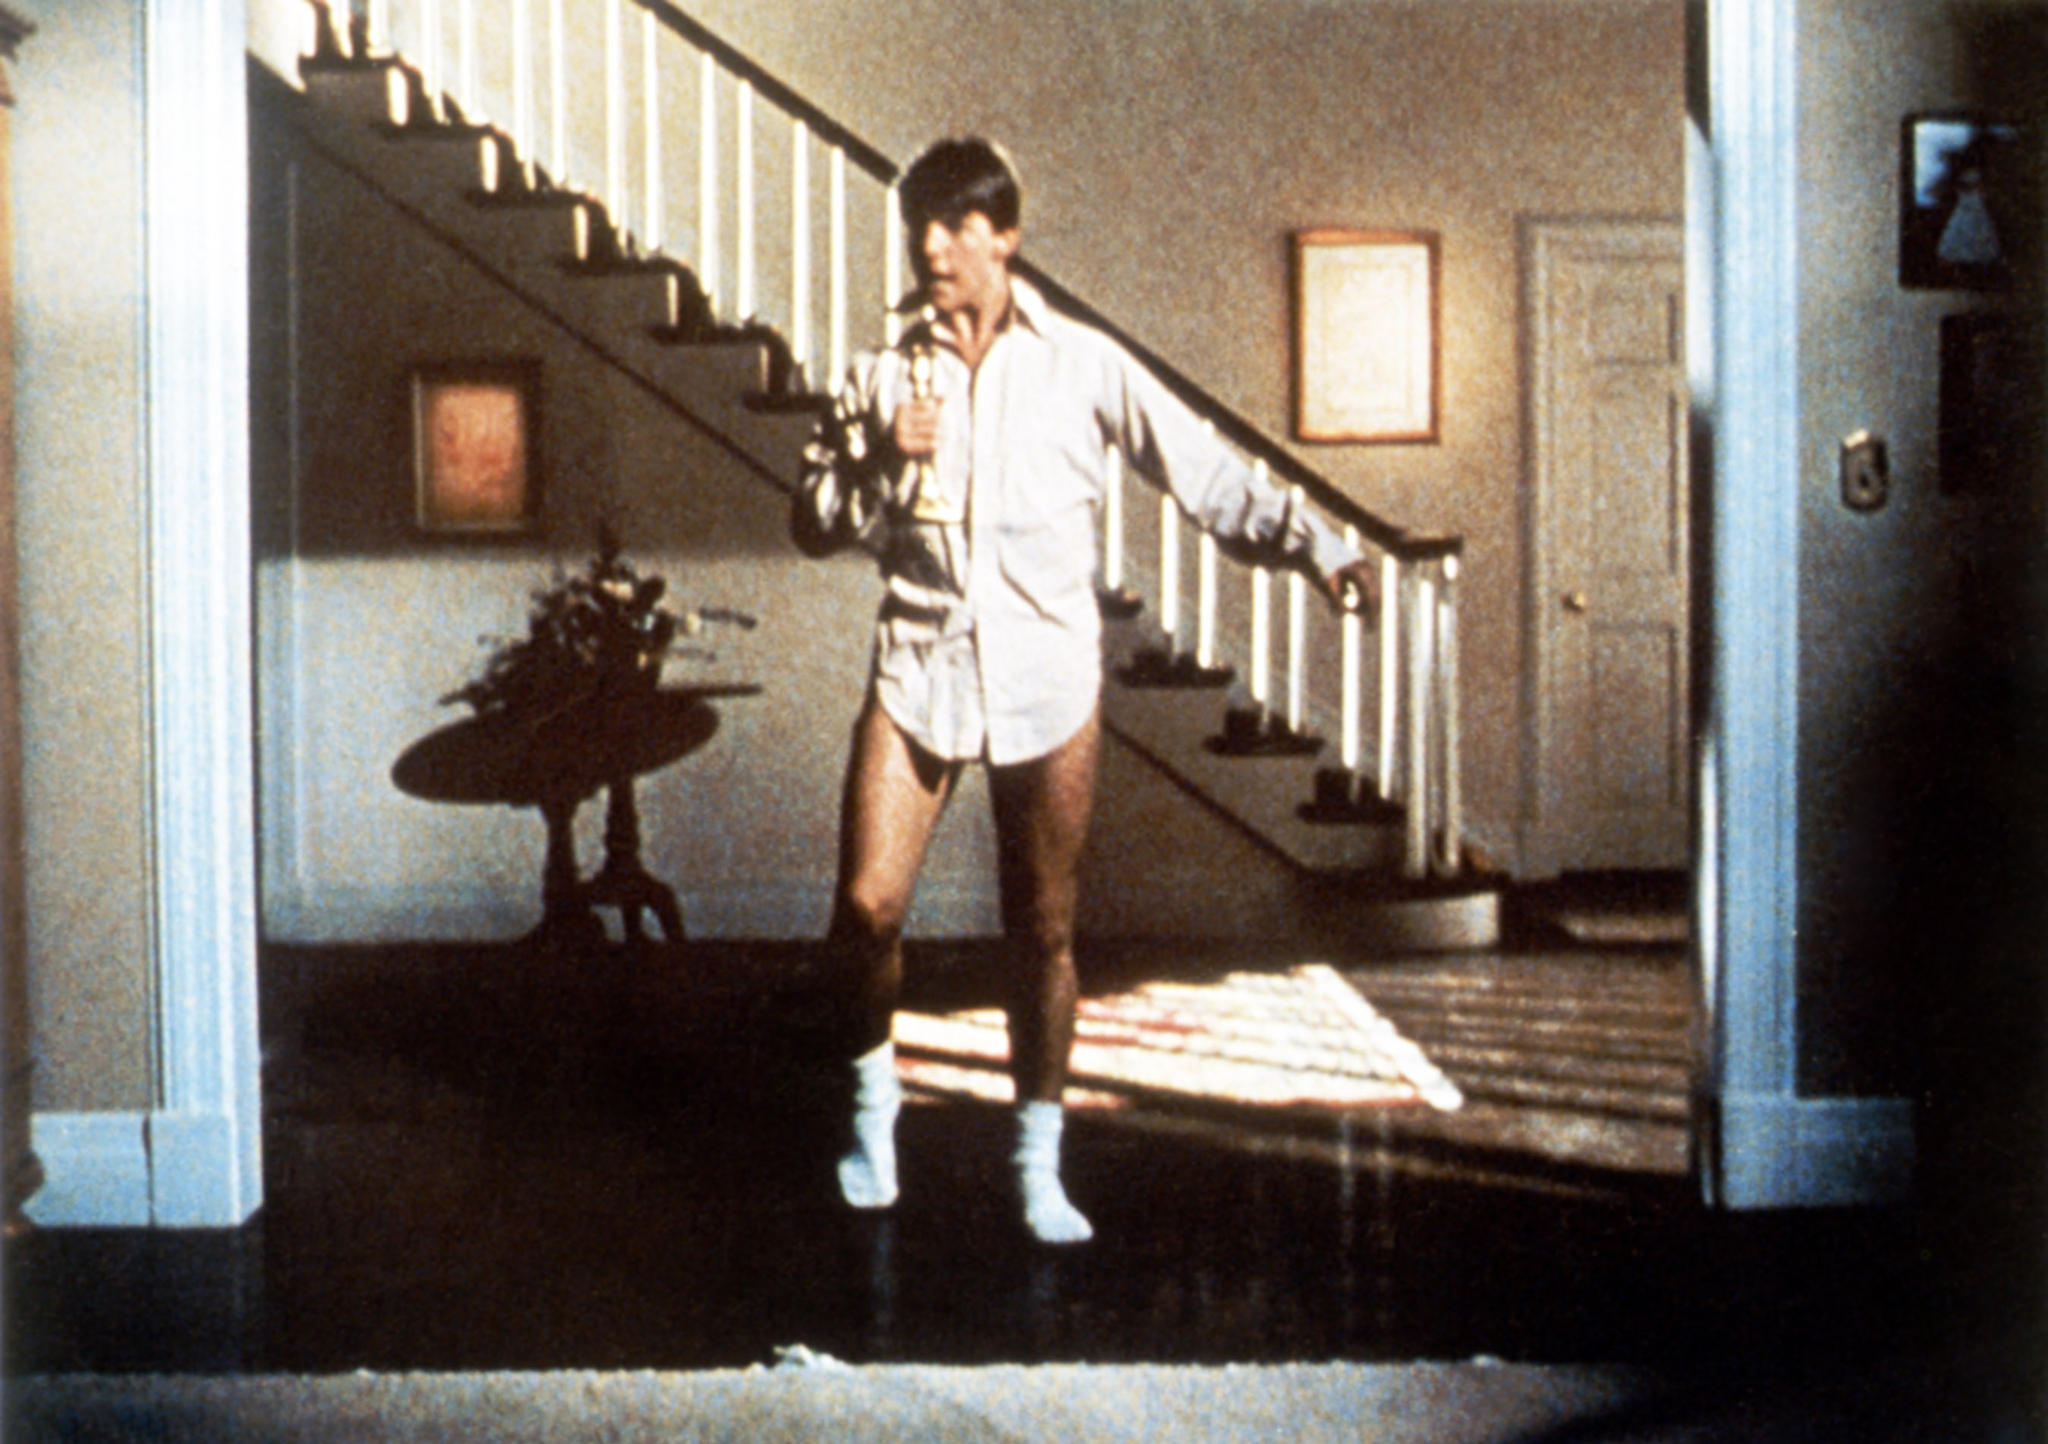 Tom Cruise in 'Risky Business' (Photo: Everett)